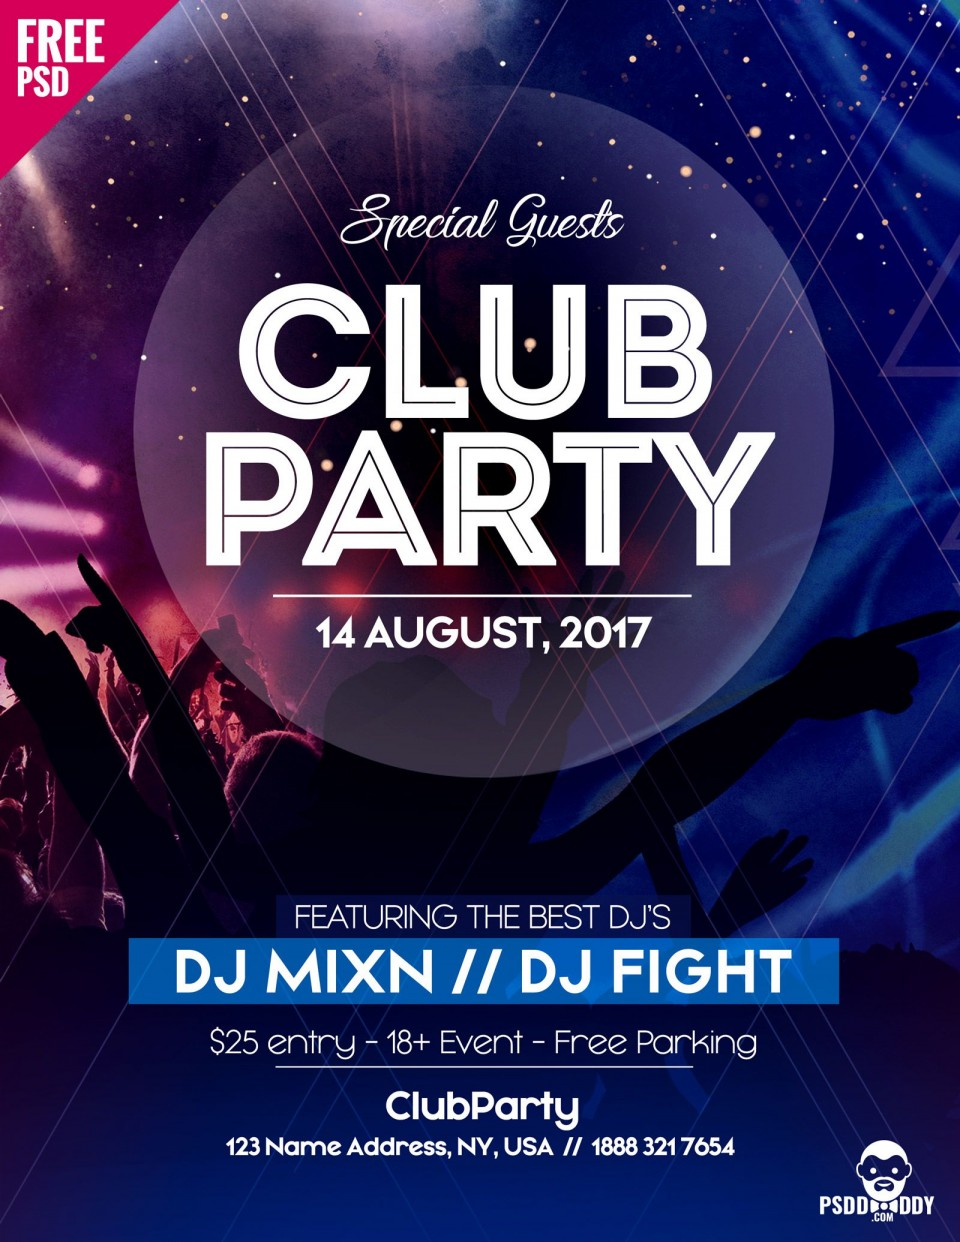 004 Rare Party Event Flyer Template Free Download Picture 960